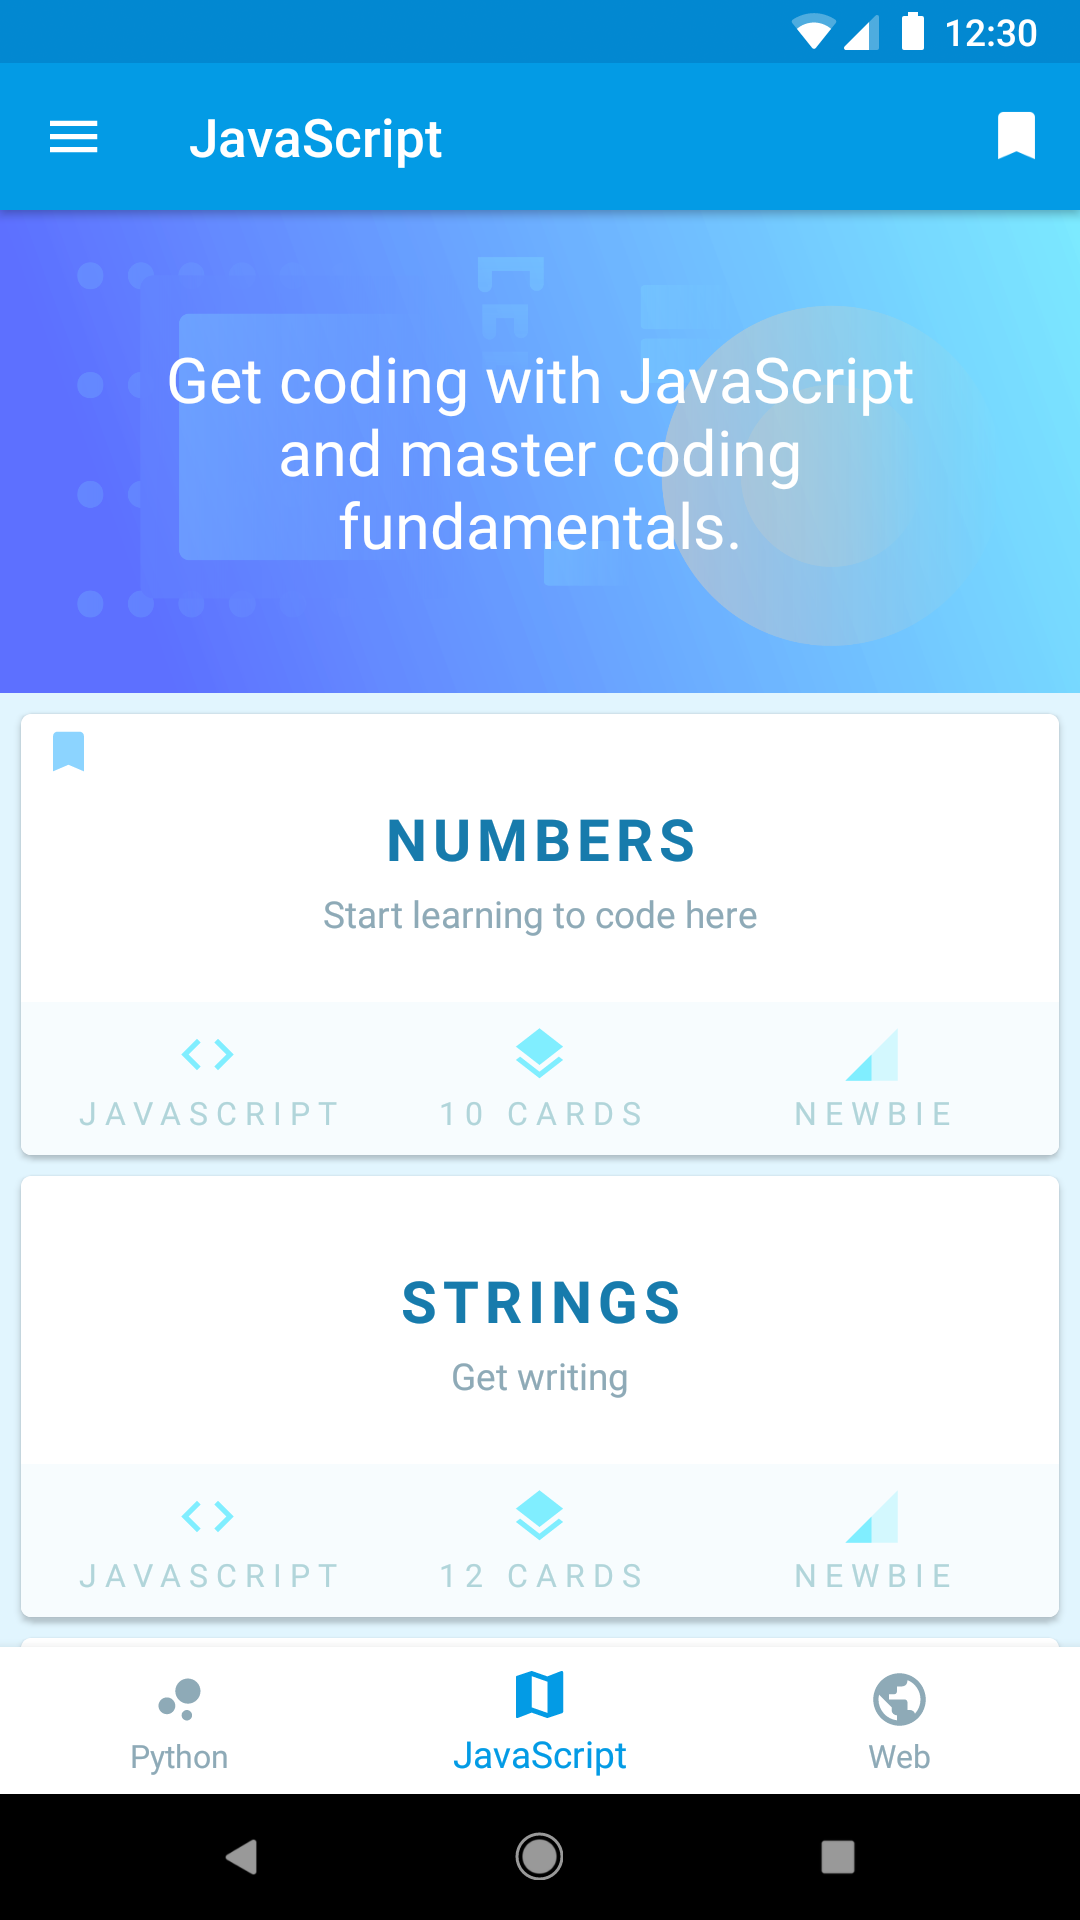 Want to Learn Basic Coding? Try 5 Bite-Sized Coding Apps in